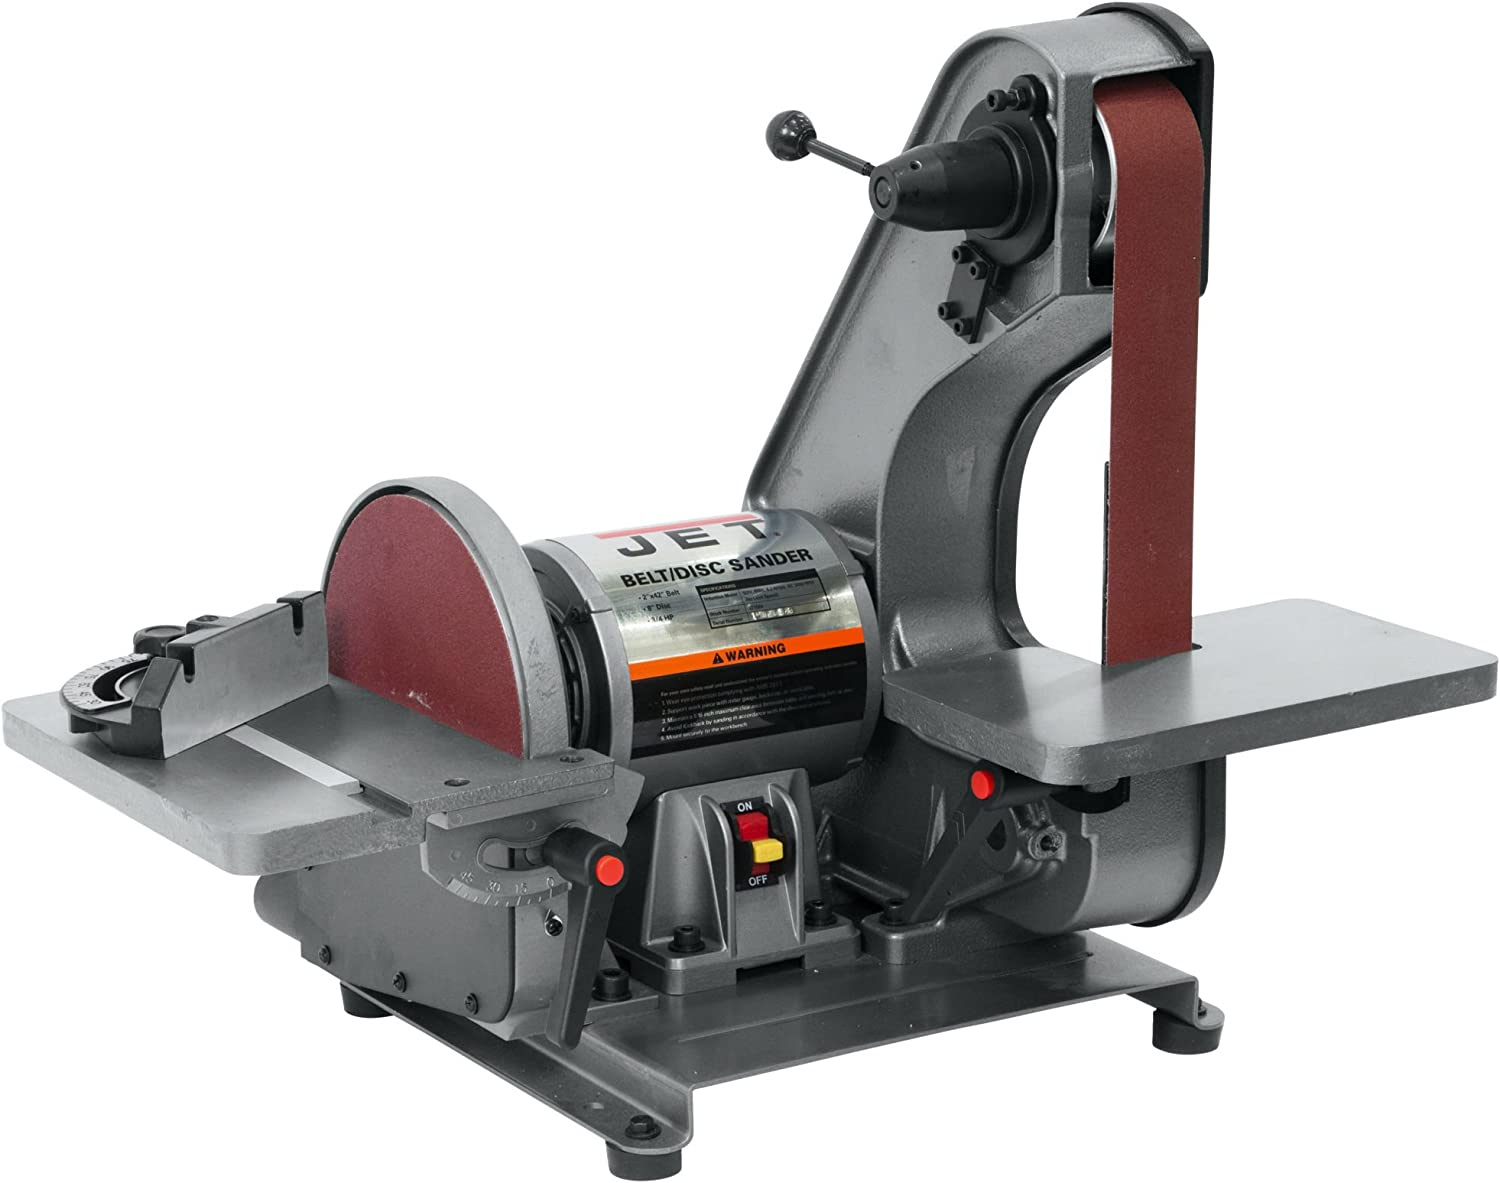 Jet J-41002 Bench Belt and 8-Inch Disc Sander